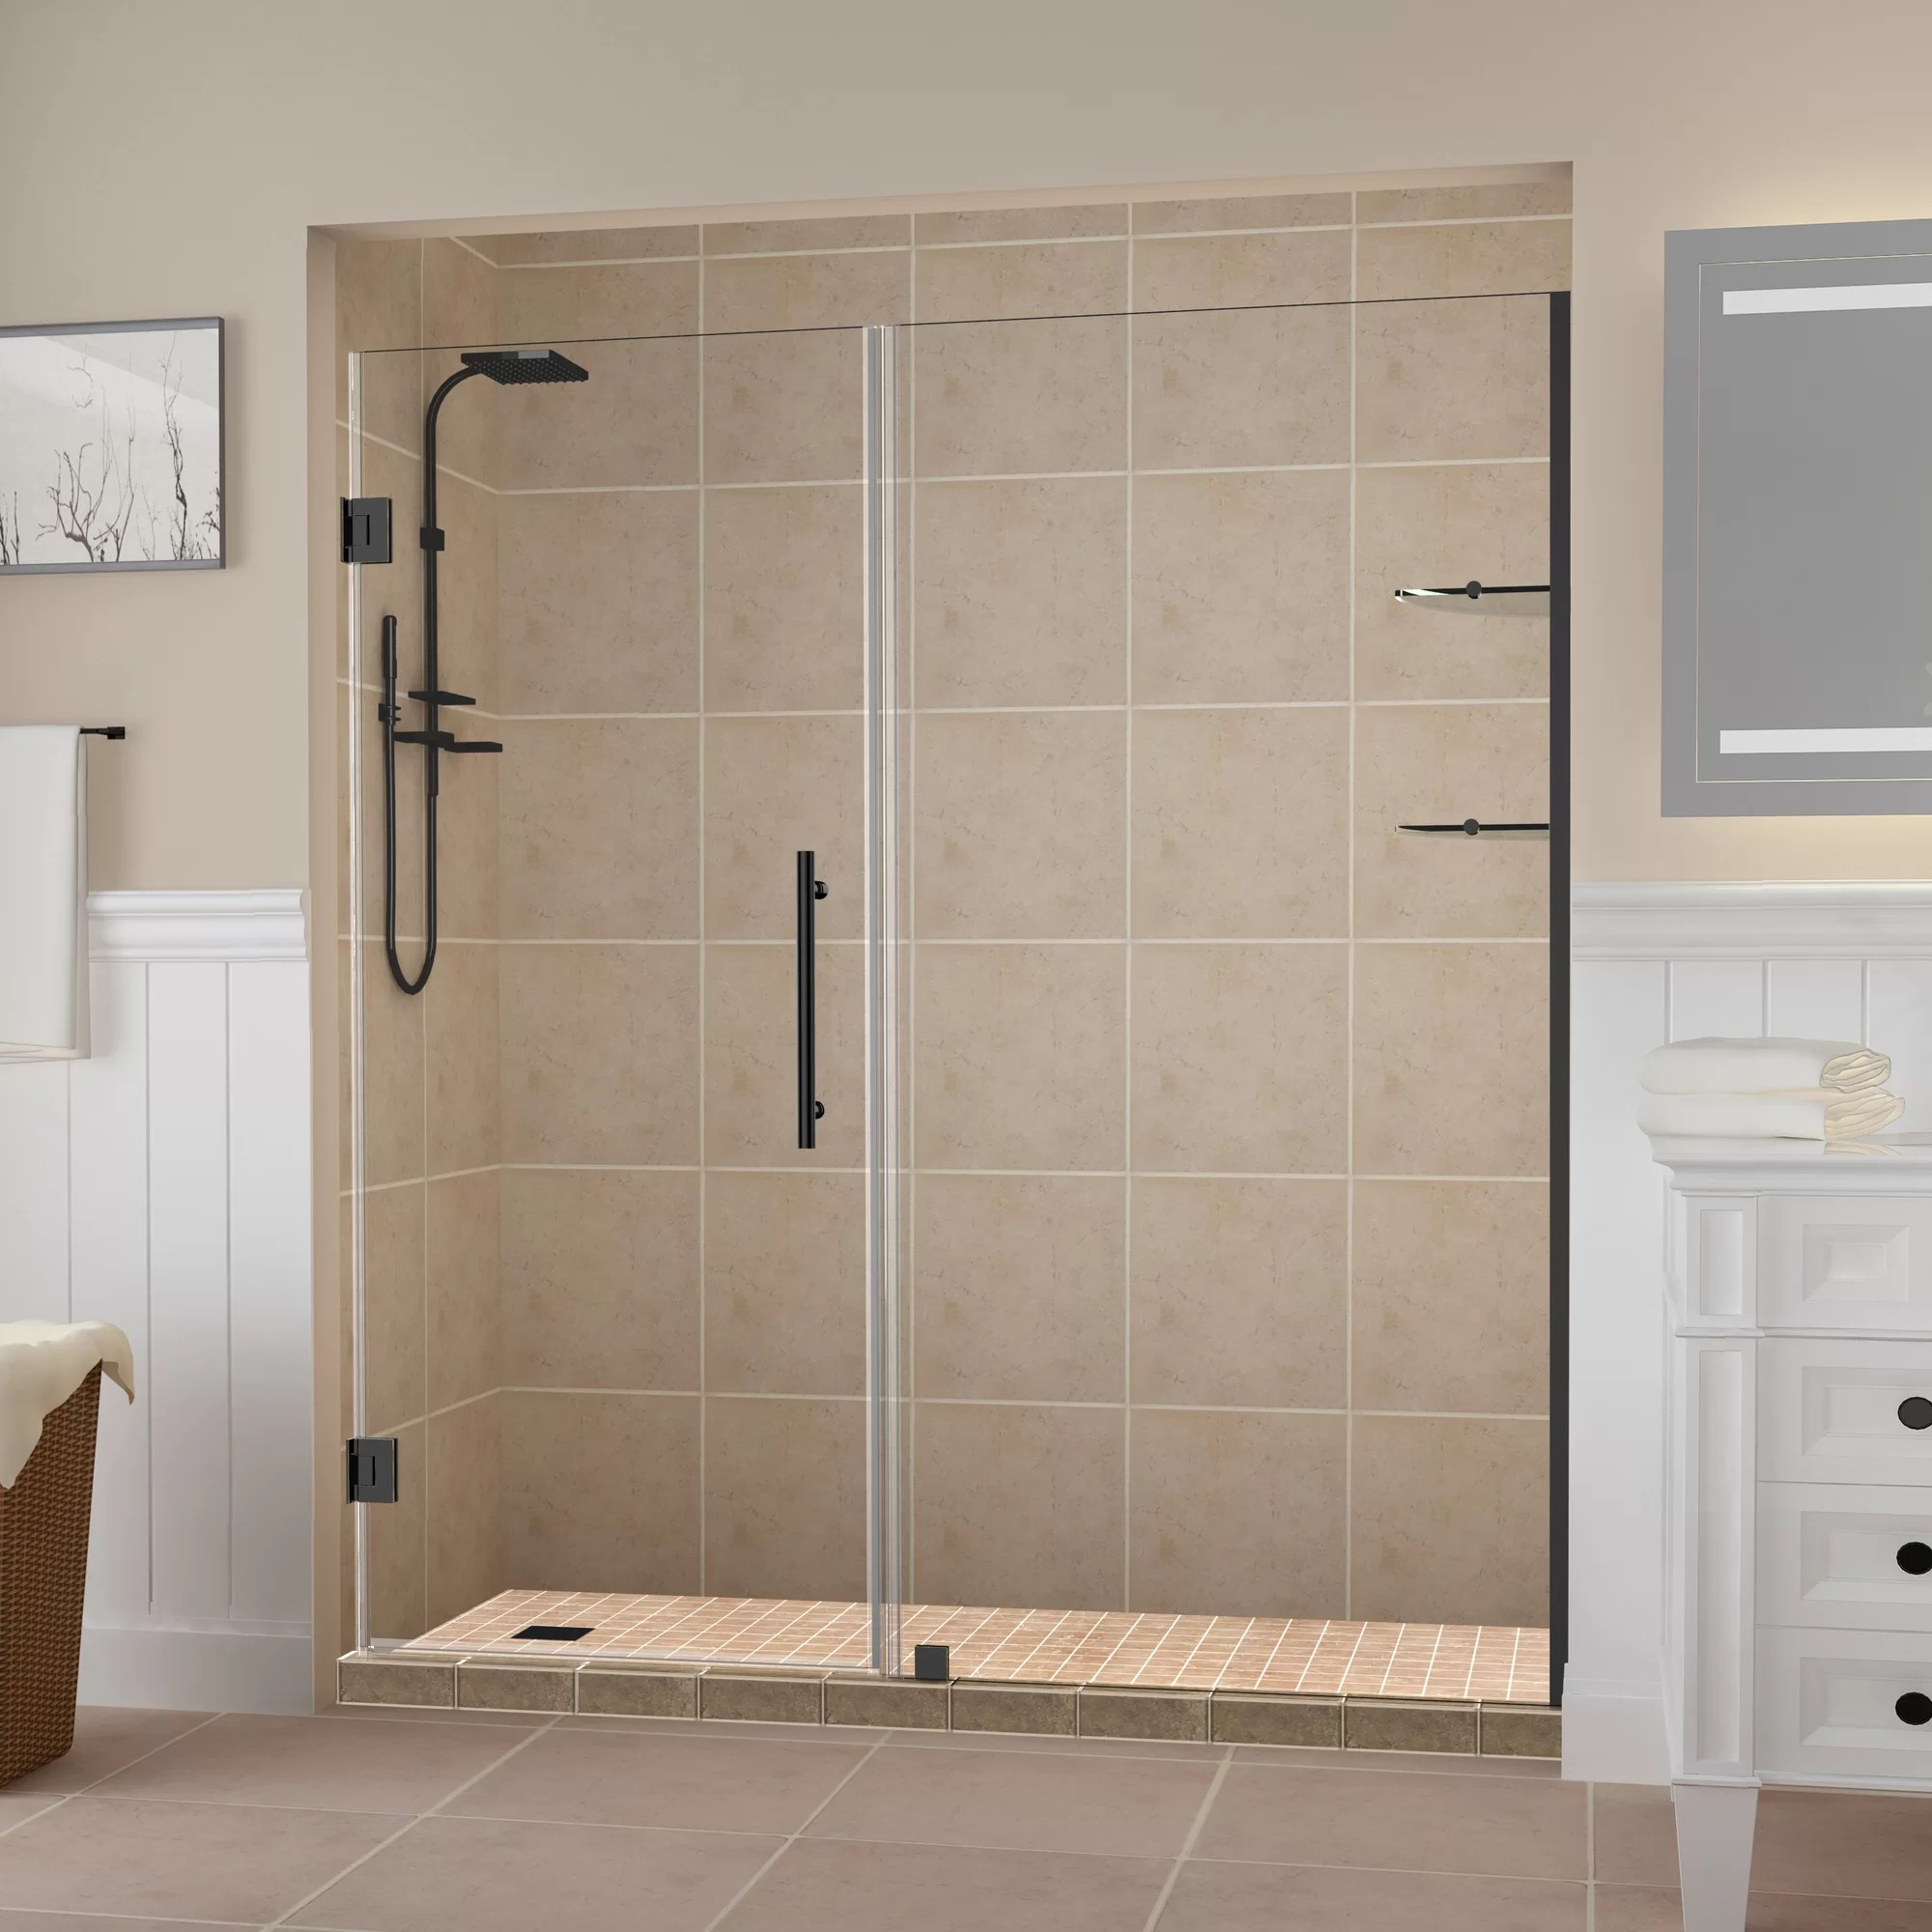 Details About Aston Belmore Gs 40 25 X 72 Hinged Frameless Shower Door Oil Rubbed Bronze